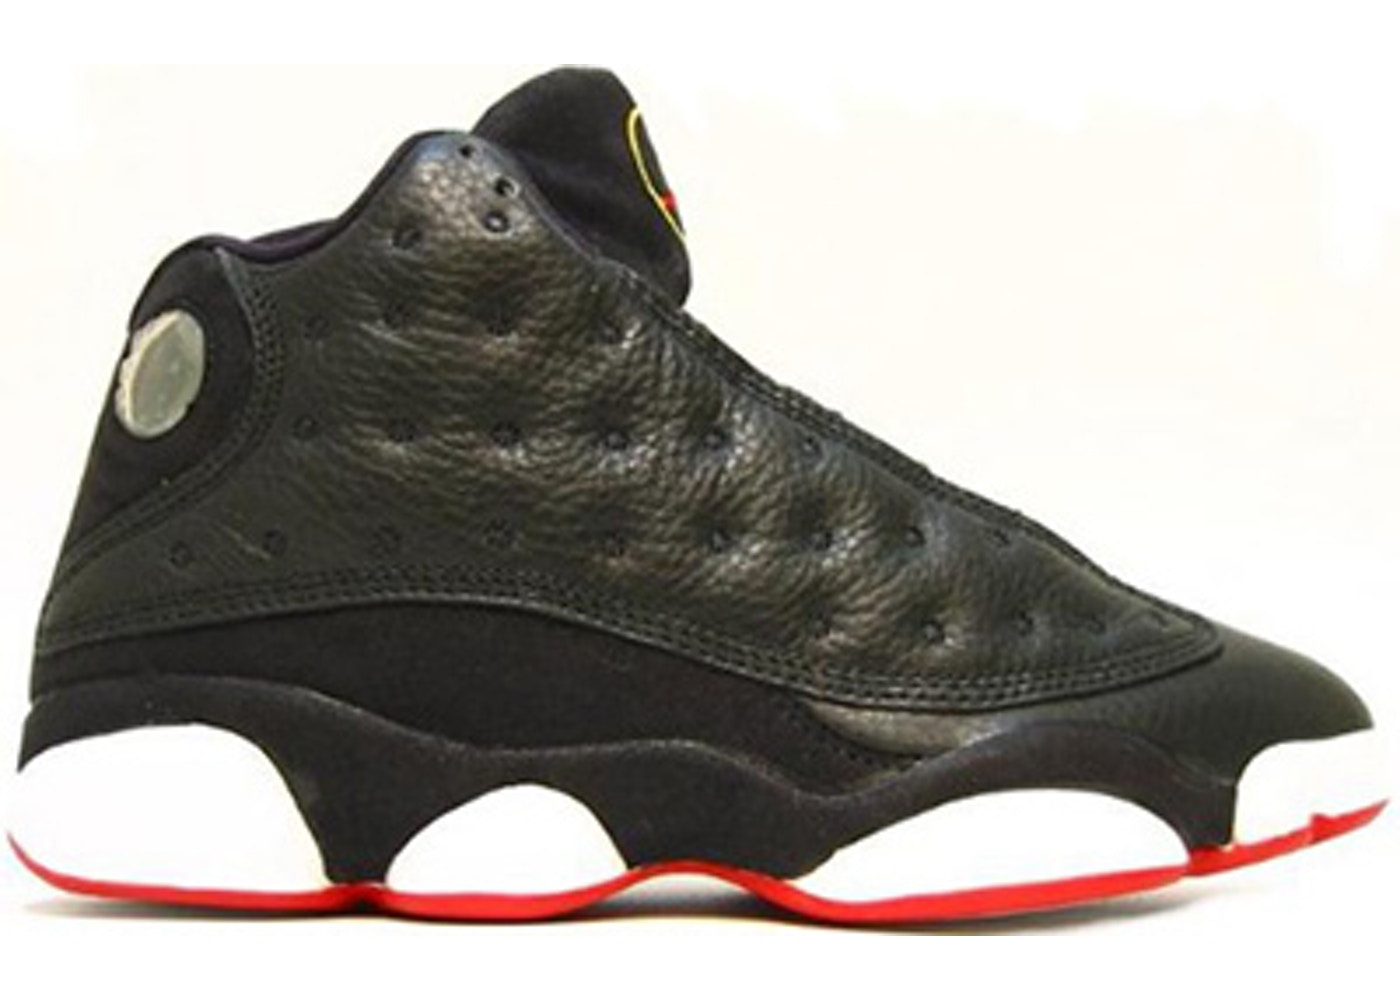 innovative design d5f03 e3dcd Jordan 13 OG Playoffs (1997) - 136002-061